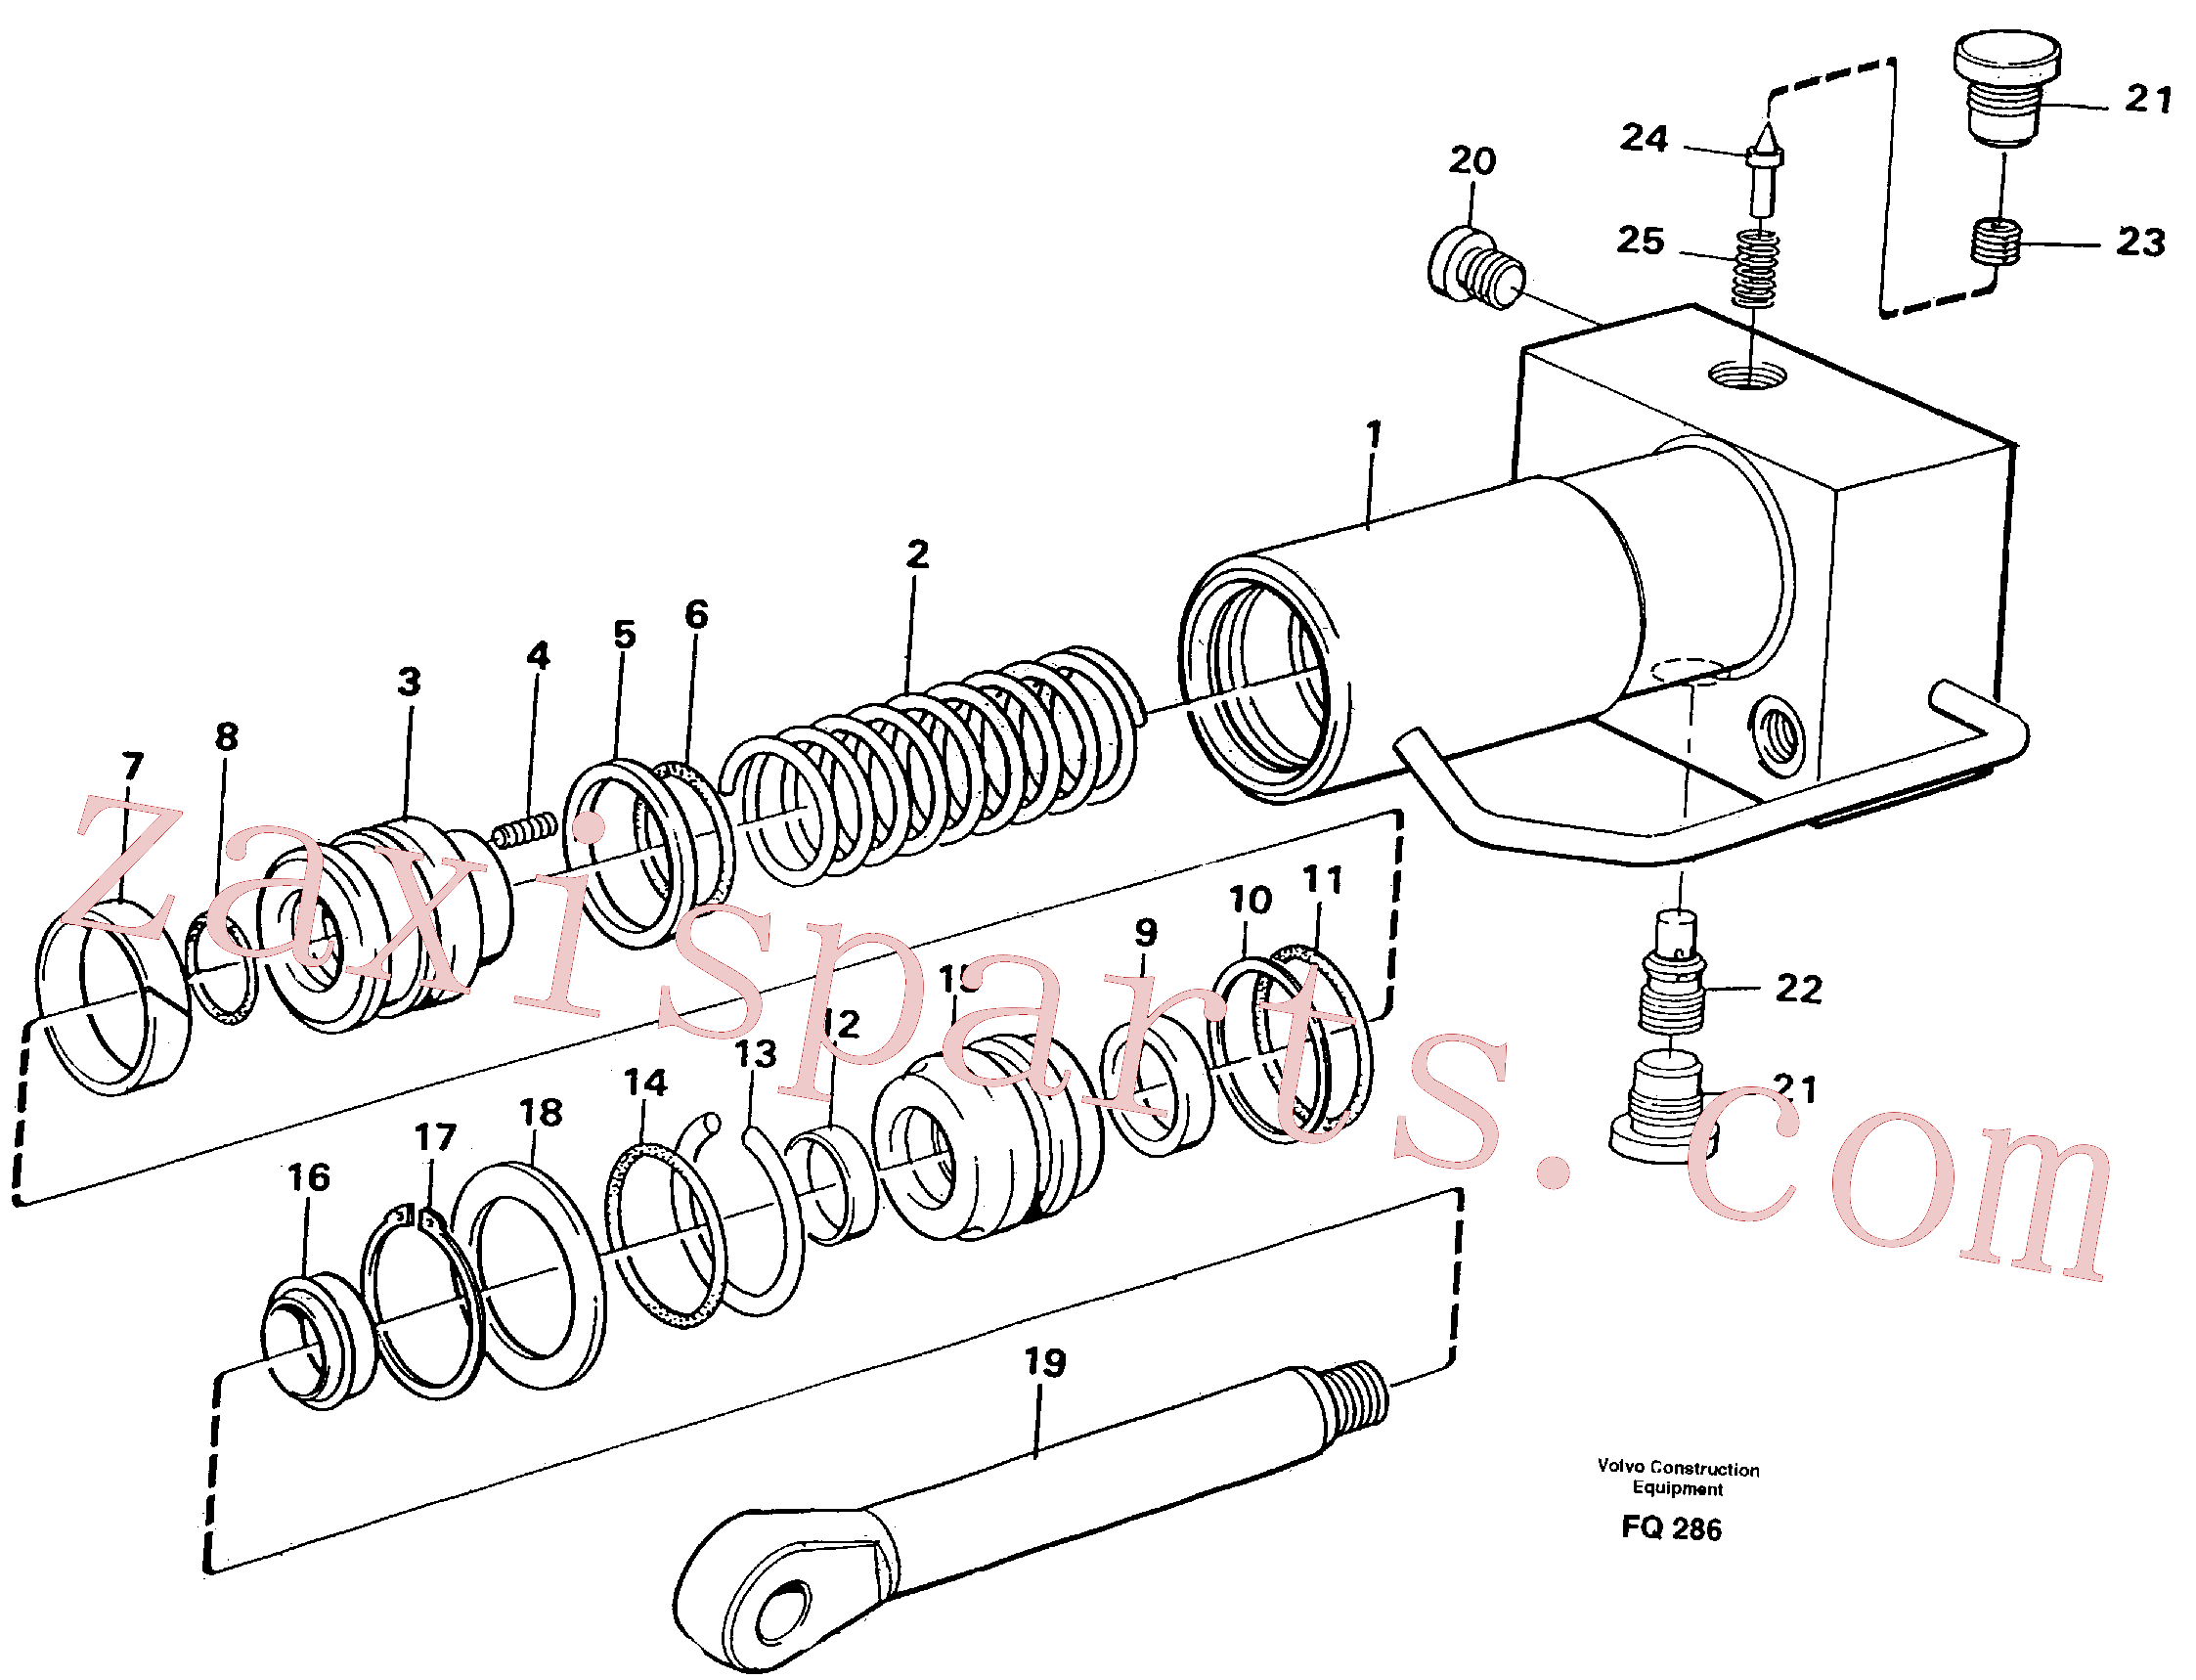 VOE14040036 for Volvo Hydraulic cylinder, quick attachment(FQ286 assembly)